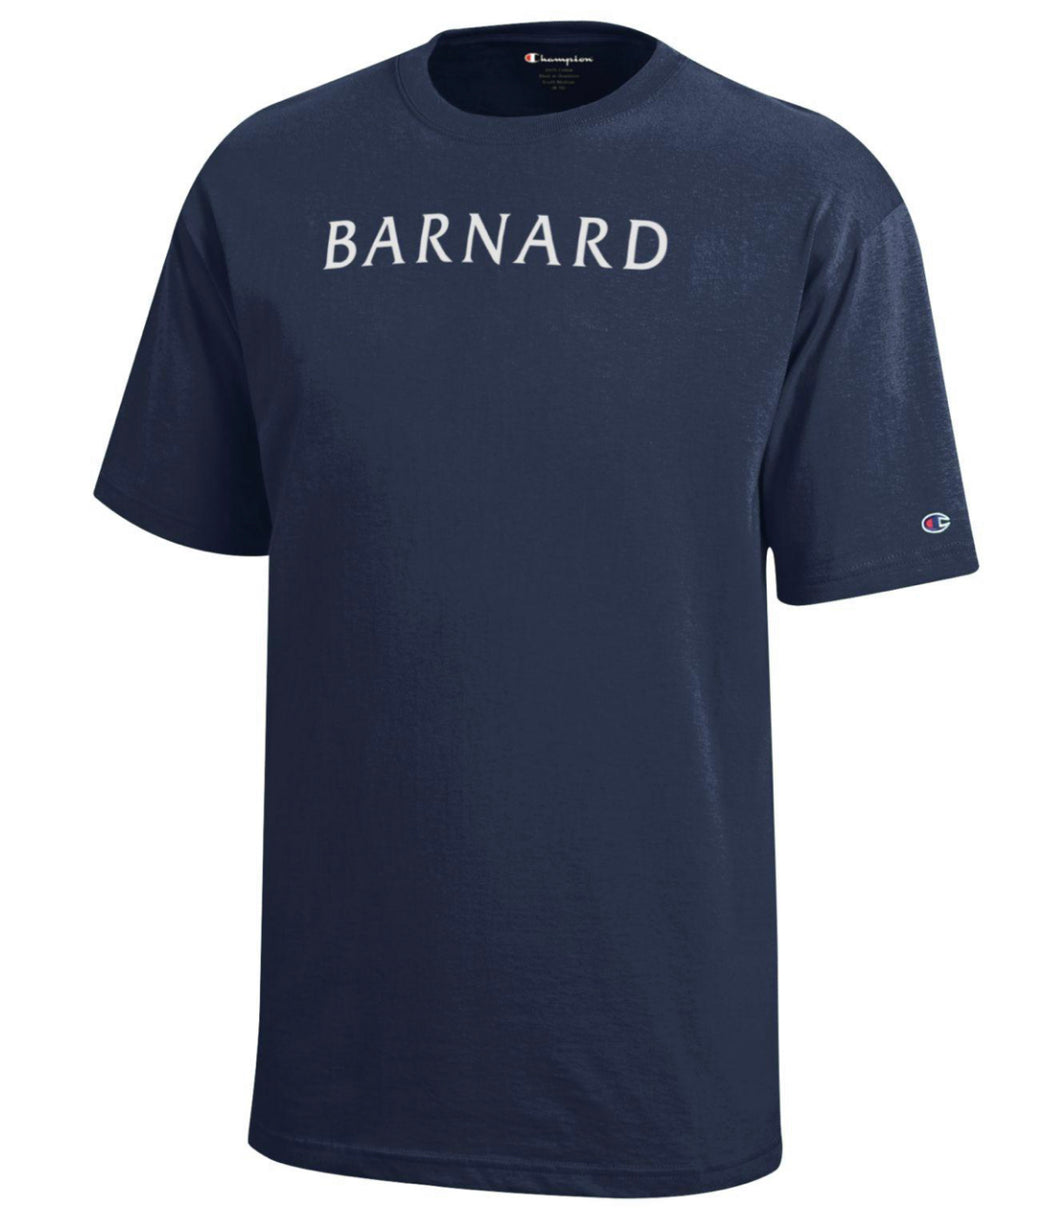 Basic Barnard Youth Tee